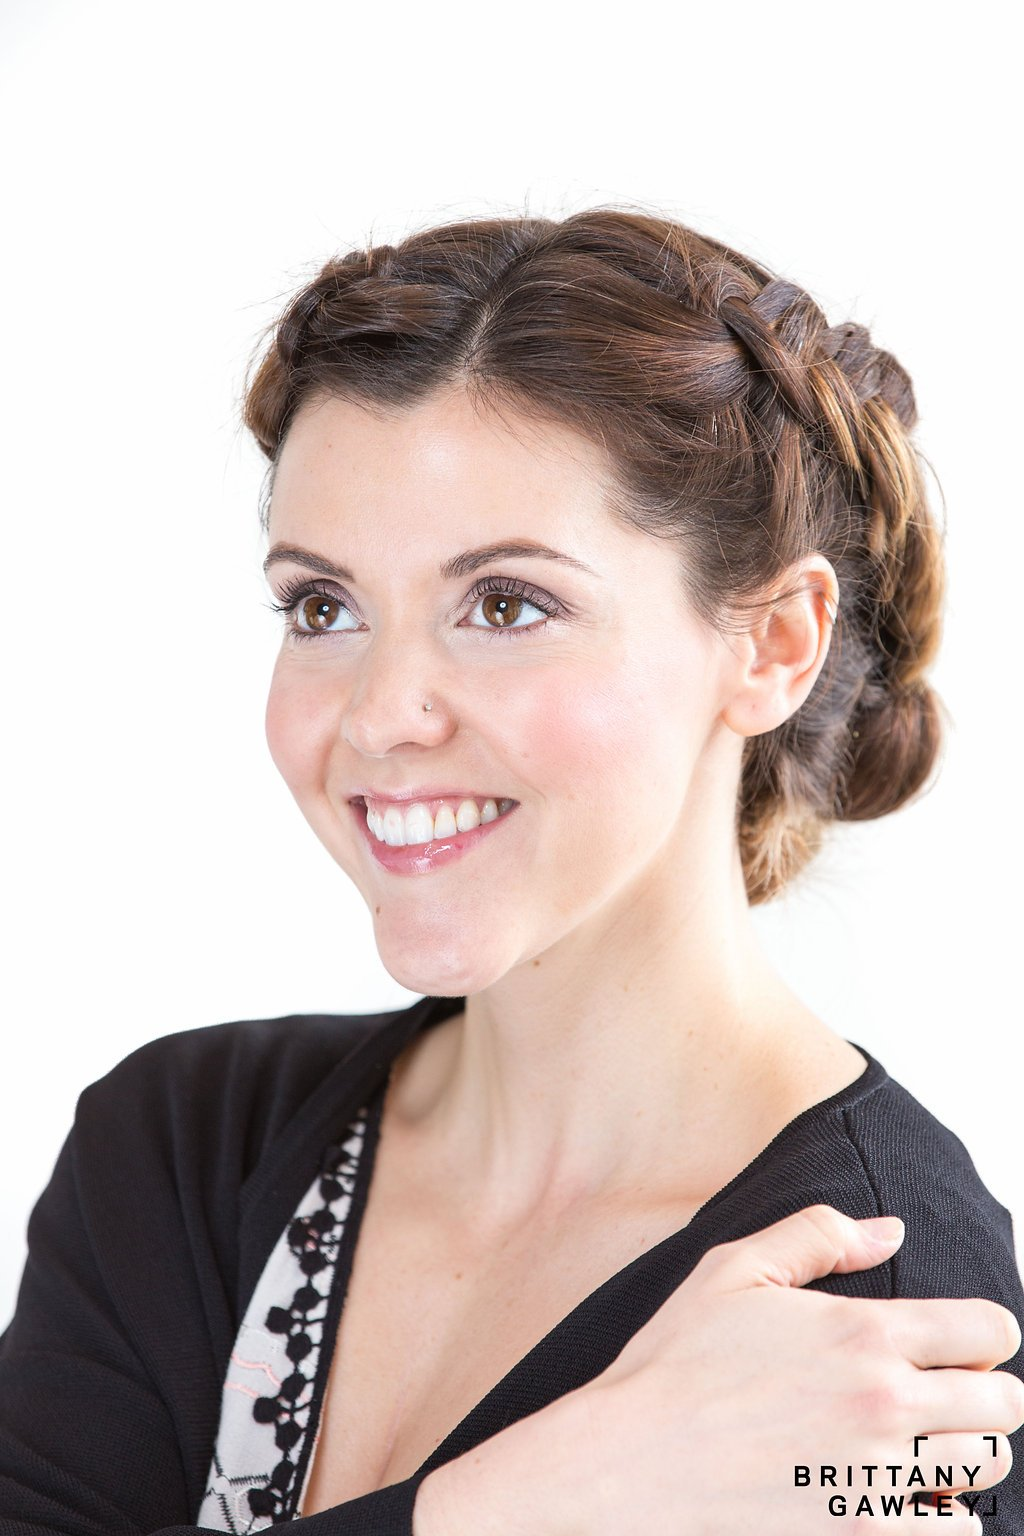 Ottawa makeup artist Klava Z created a casual neutral eco makeup look using only natural organic products